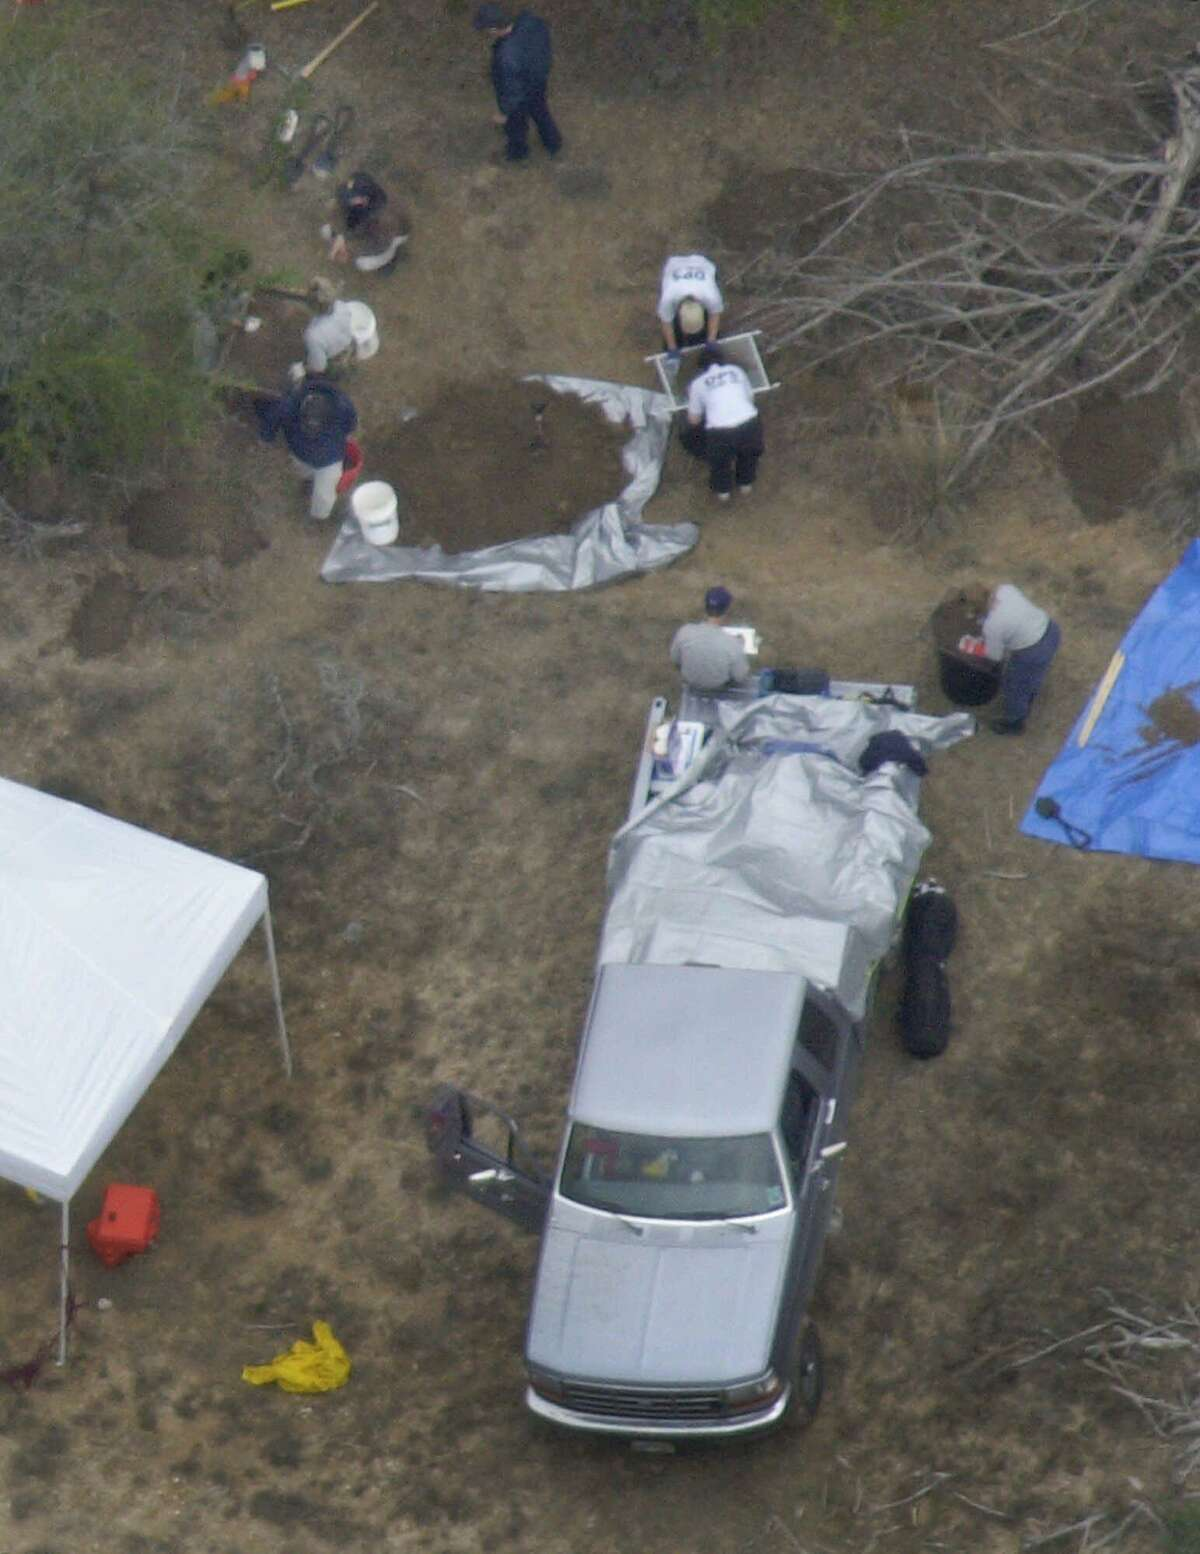 FILE--State and federal agents dig in a marked area on a remote South Texas ranch as they search for the remains of missing atheist leader Madalyn Murray O'Hair and her family near Camp Wood, Texas, in this Jan. 27, 2001 file photo. Federal authorities confirmed Thursday, March 15, 2001 that bones dug up from the ranch are those of Madalyn Murray O'Hair, 76, and her son Jon Garth Murray, 40, and Robin Murray O'Hair, 30, her granddaughter. The family disappeared from San Antonio in 1995 along with $500,000 in gold coins. Investigators believe they were kidnapped, robbed and killed, and their bodies were cut up and dumped on the ranch. (AP Photo/Eric Gay, File)